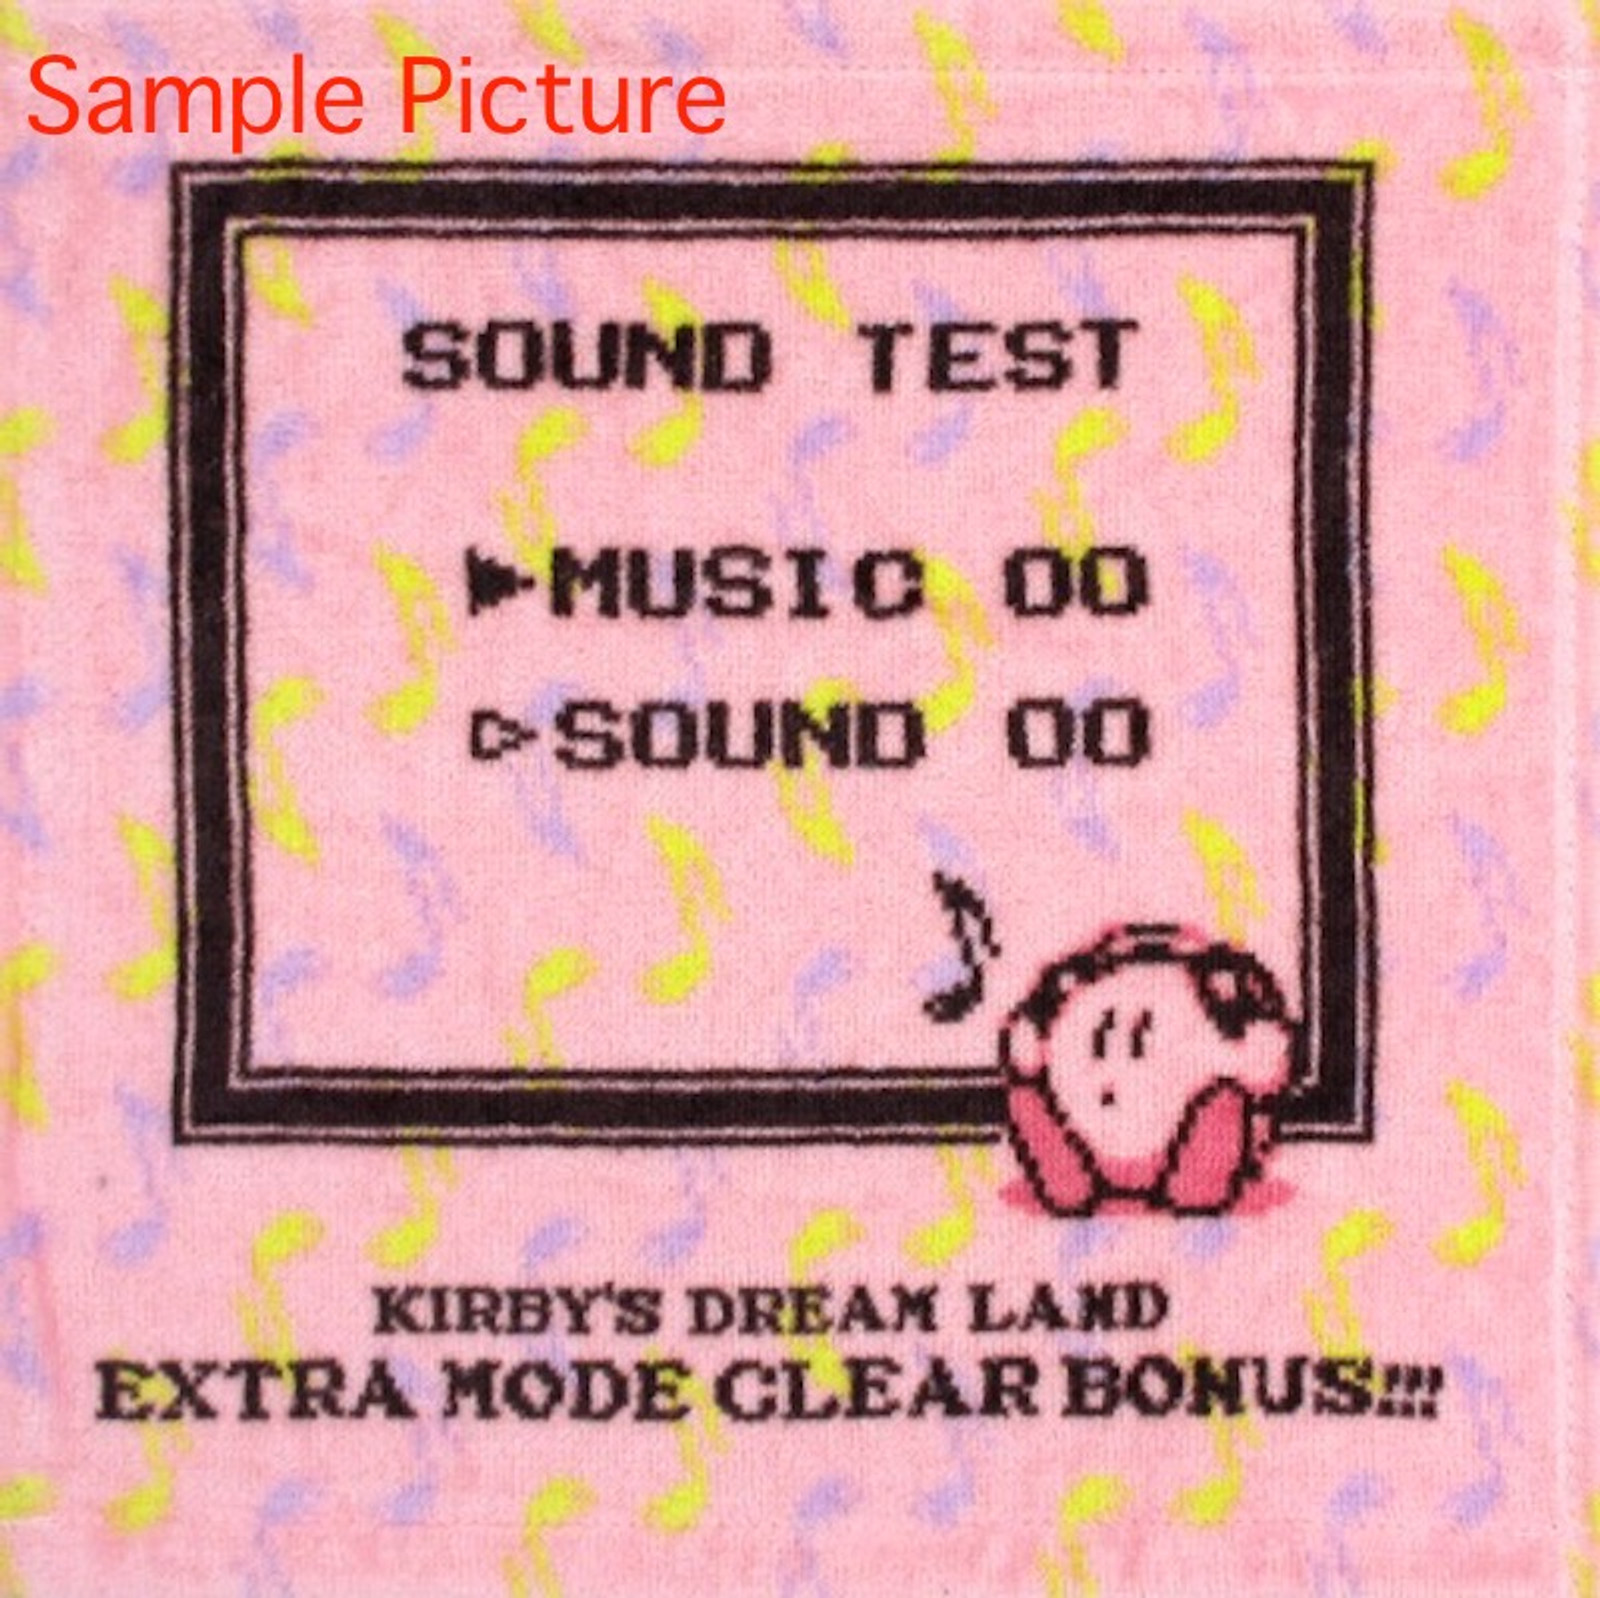 Kirby Super Star Mini Towel Sound Test Design Ver. Banpresto JAPAN GAME